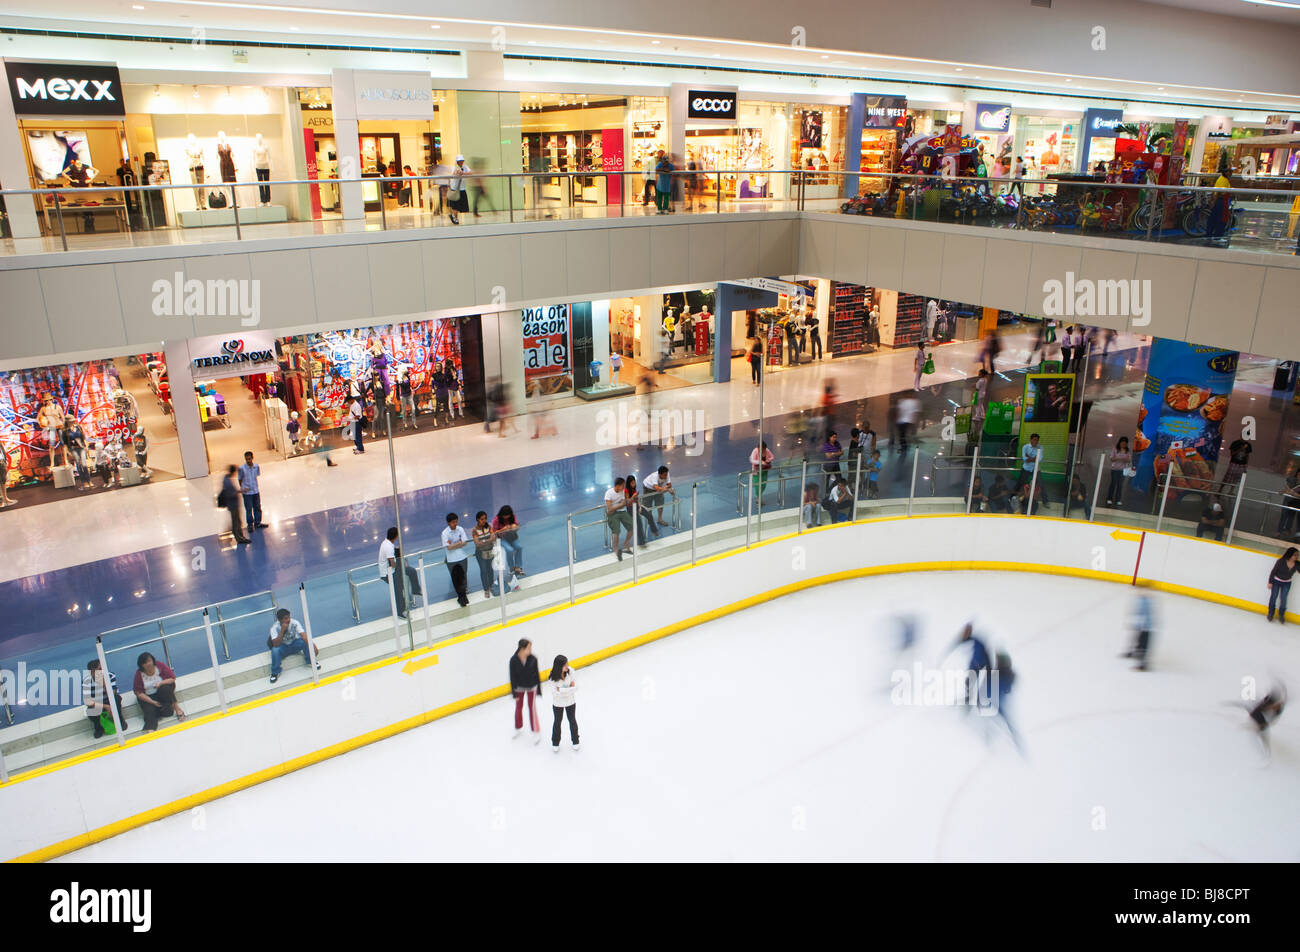 Ice skating in The Mall of Asia; Manila; Philippines - Stock Image